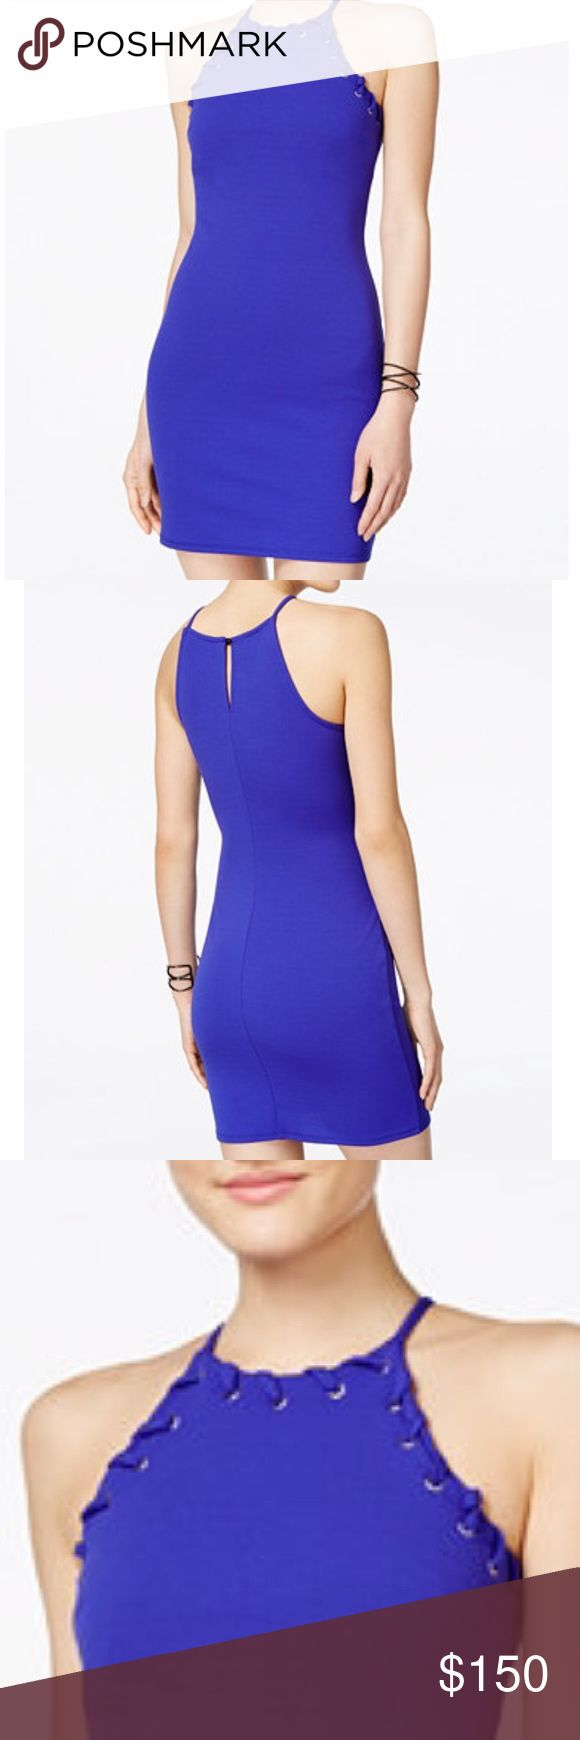 Royal blue high neck bodycon dress Gorgeous and unique royal blue body con dress. Exquisite high neck with laced sides. Thick material and super flattering on Topshop Dresses Mini